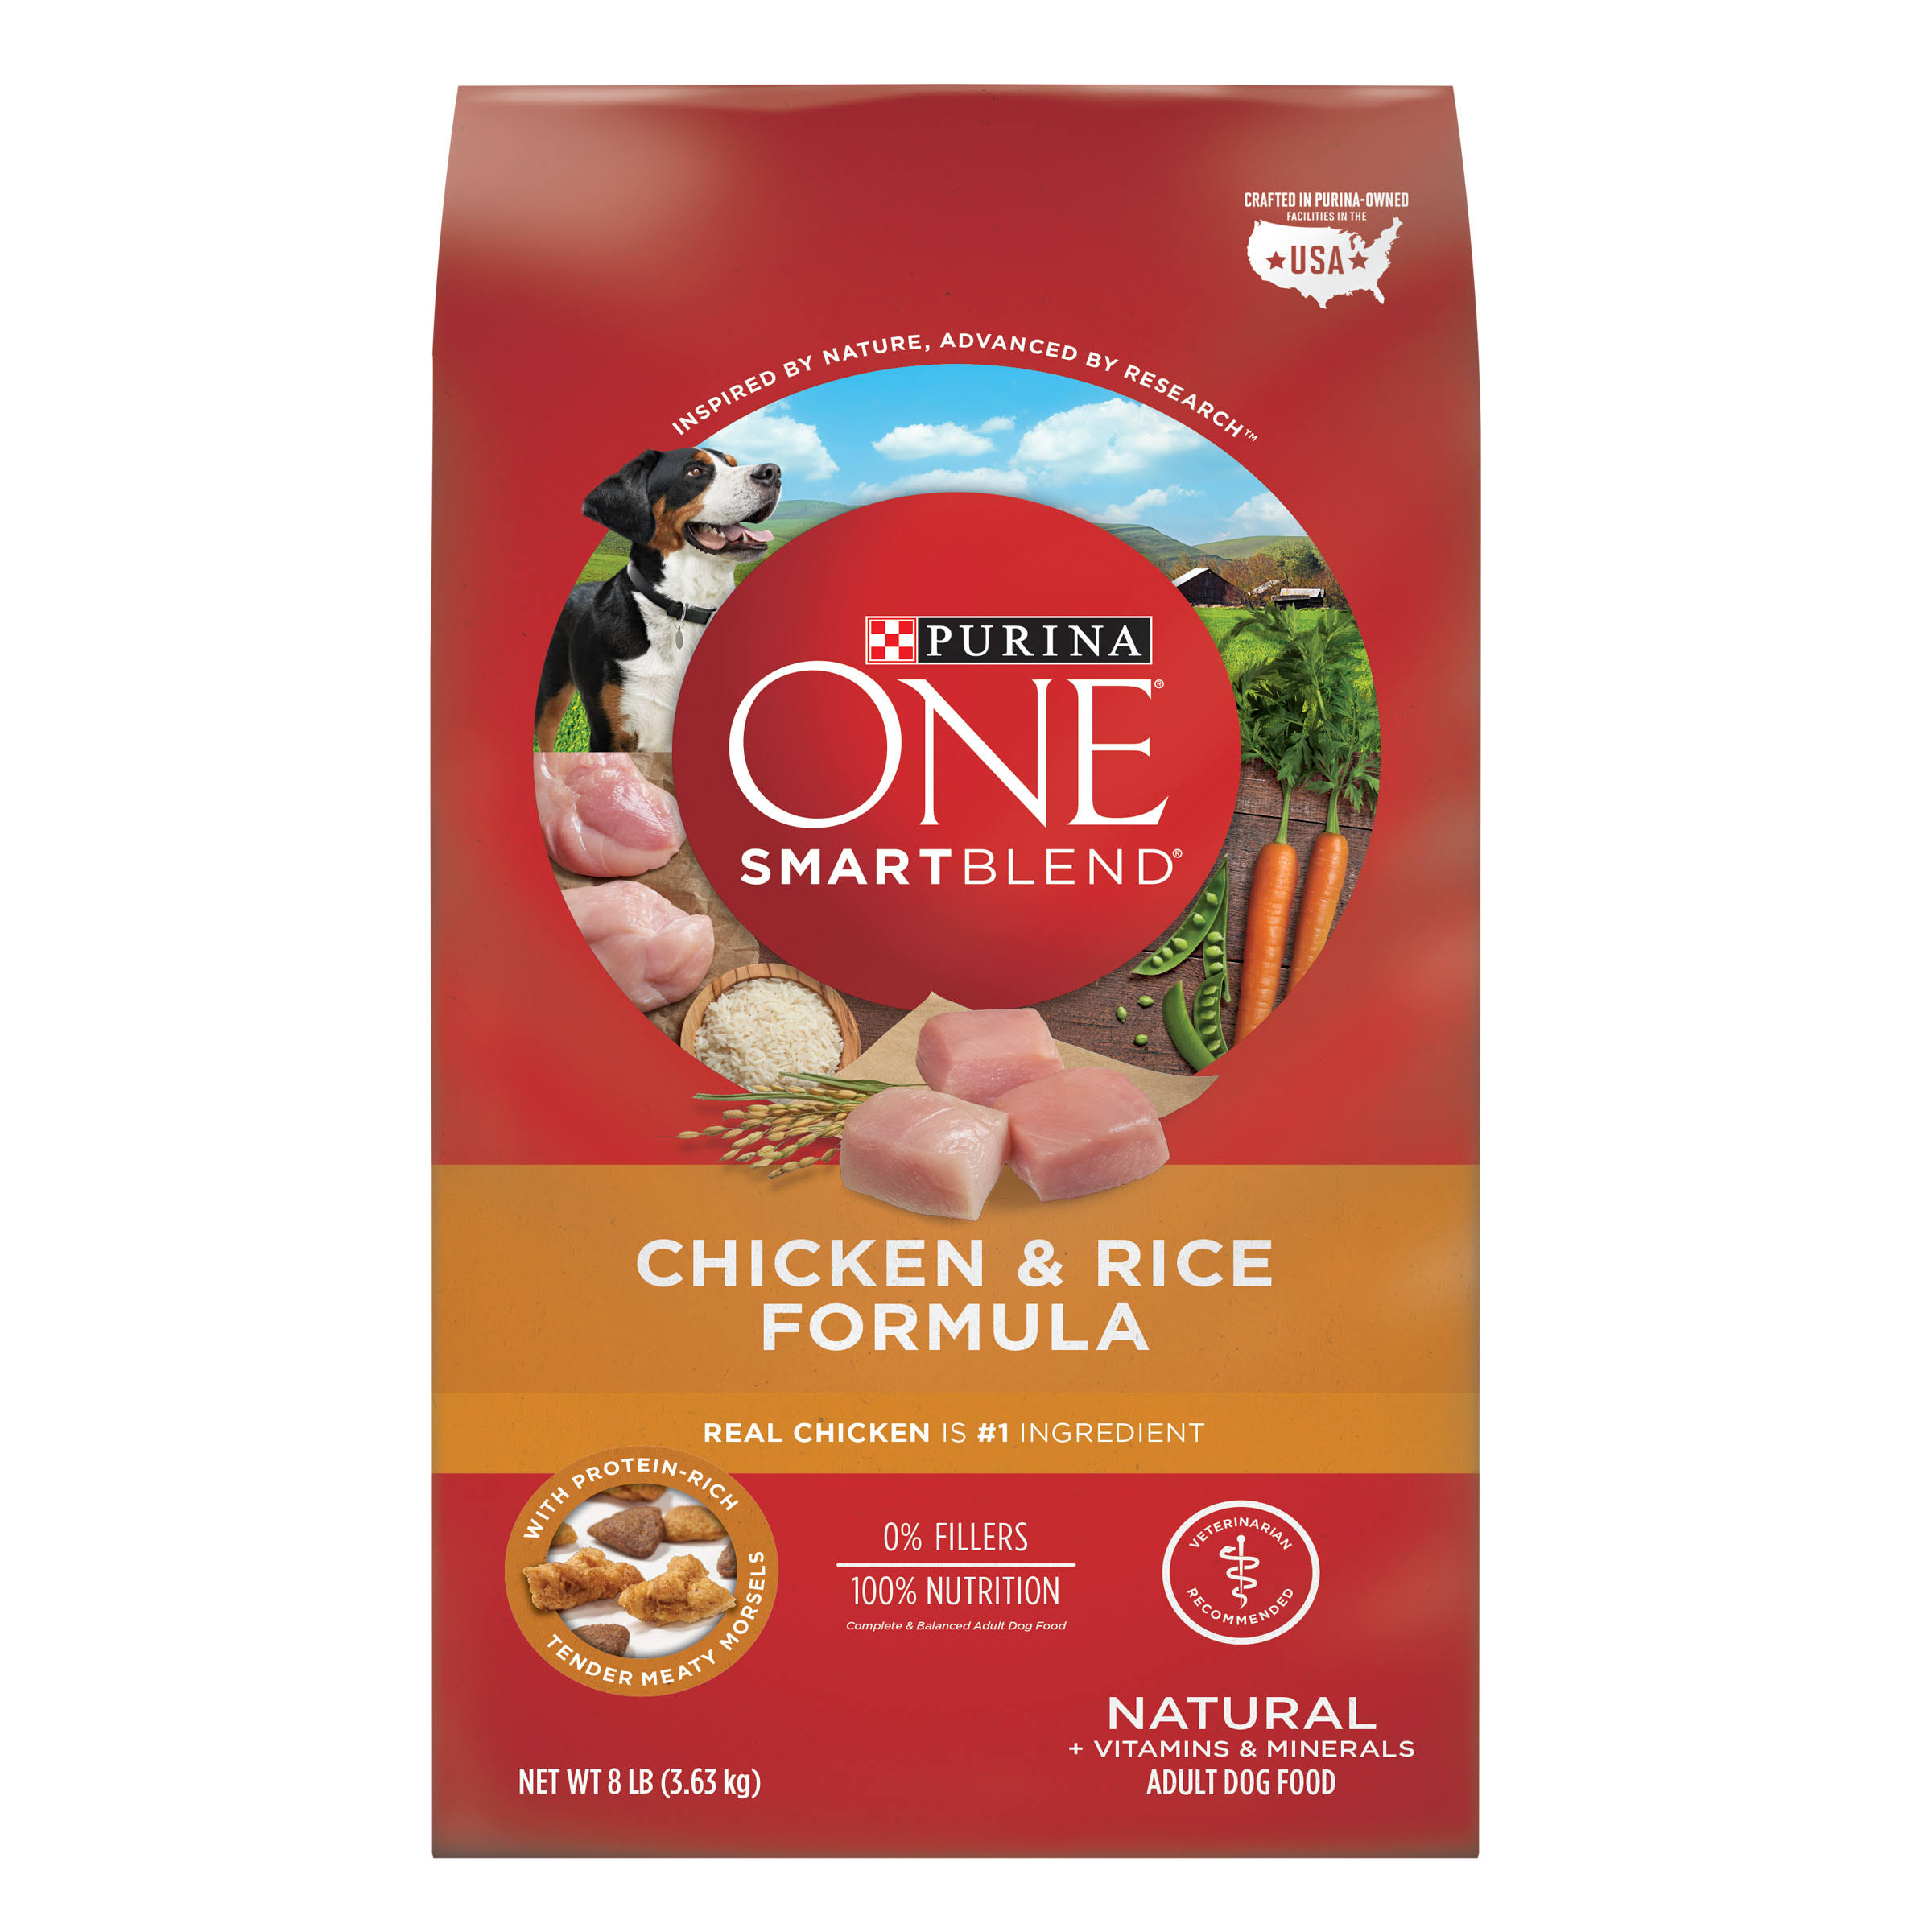 Purina ONE SmartBlend Dry Dog Food - Chicken & Rice Formula, 8lbs